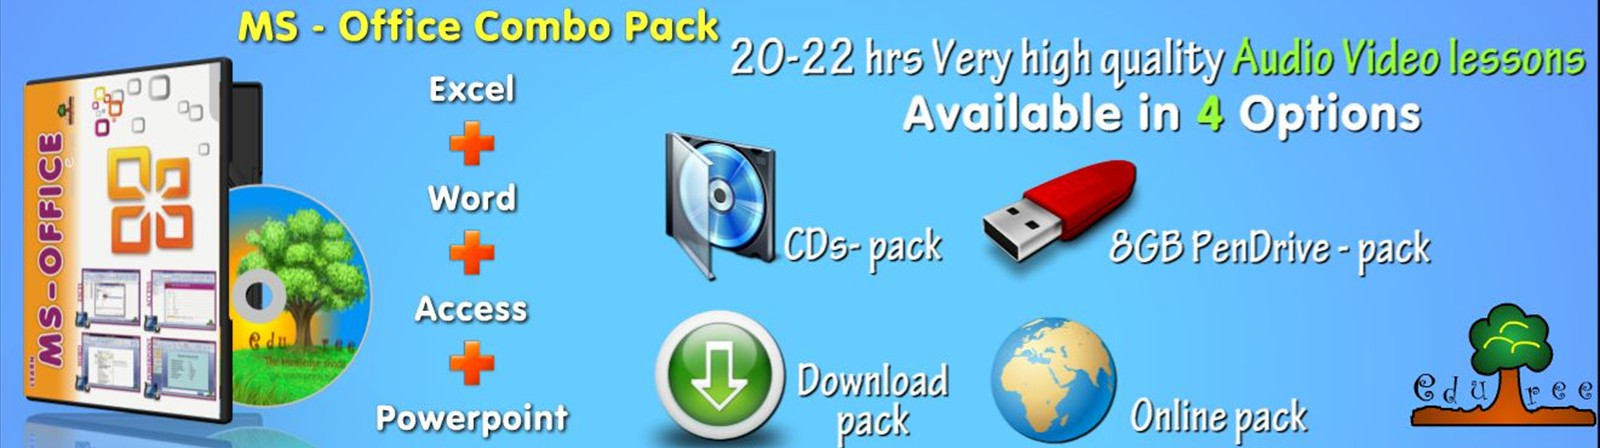 ms office combo pack